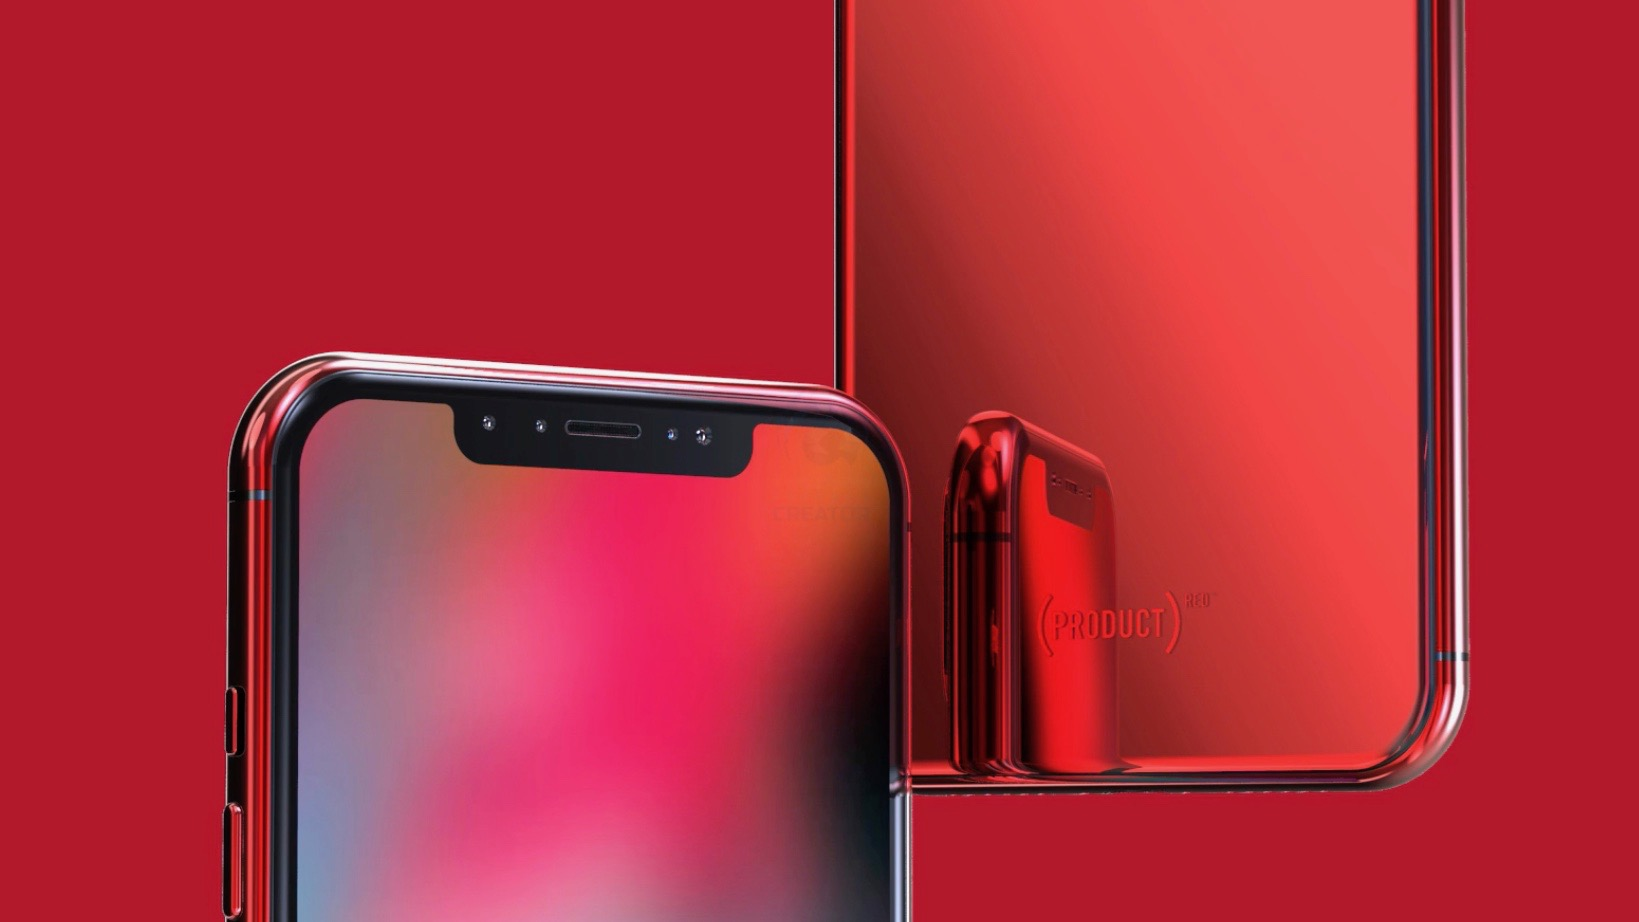 Wallpaper 4k For Phone Iphone X Concept Imagines Product Red Iphone X Amp Iphone X Plus